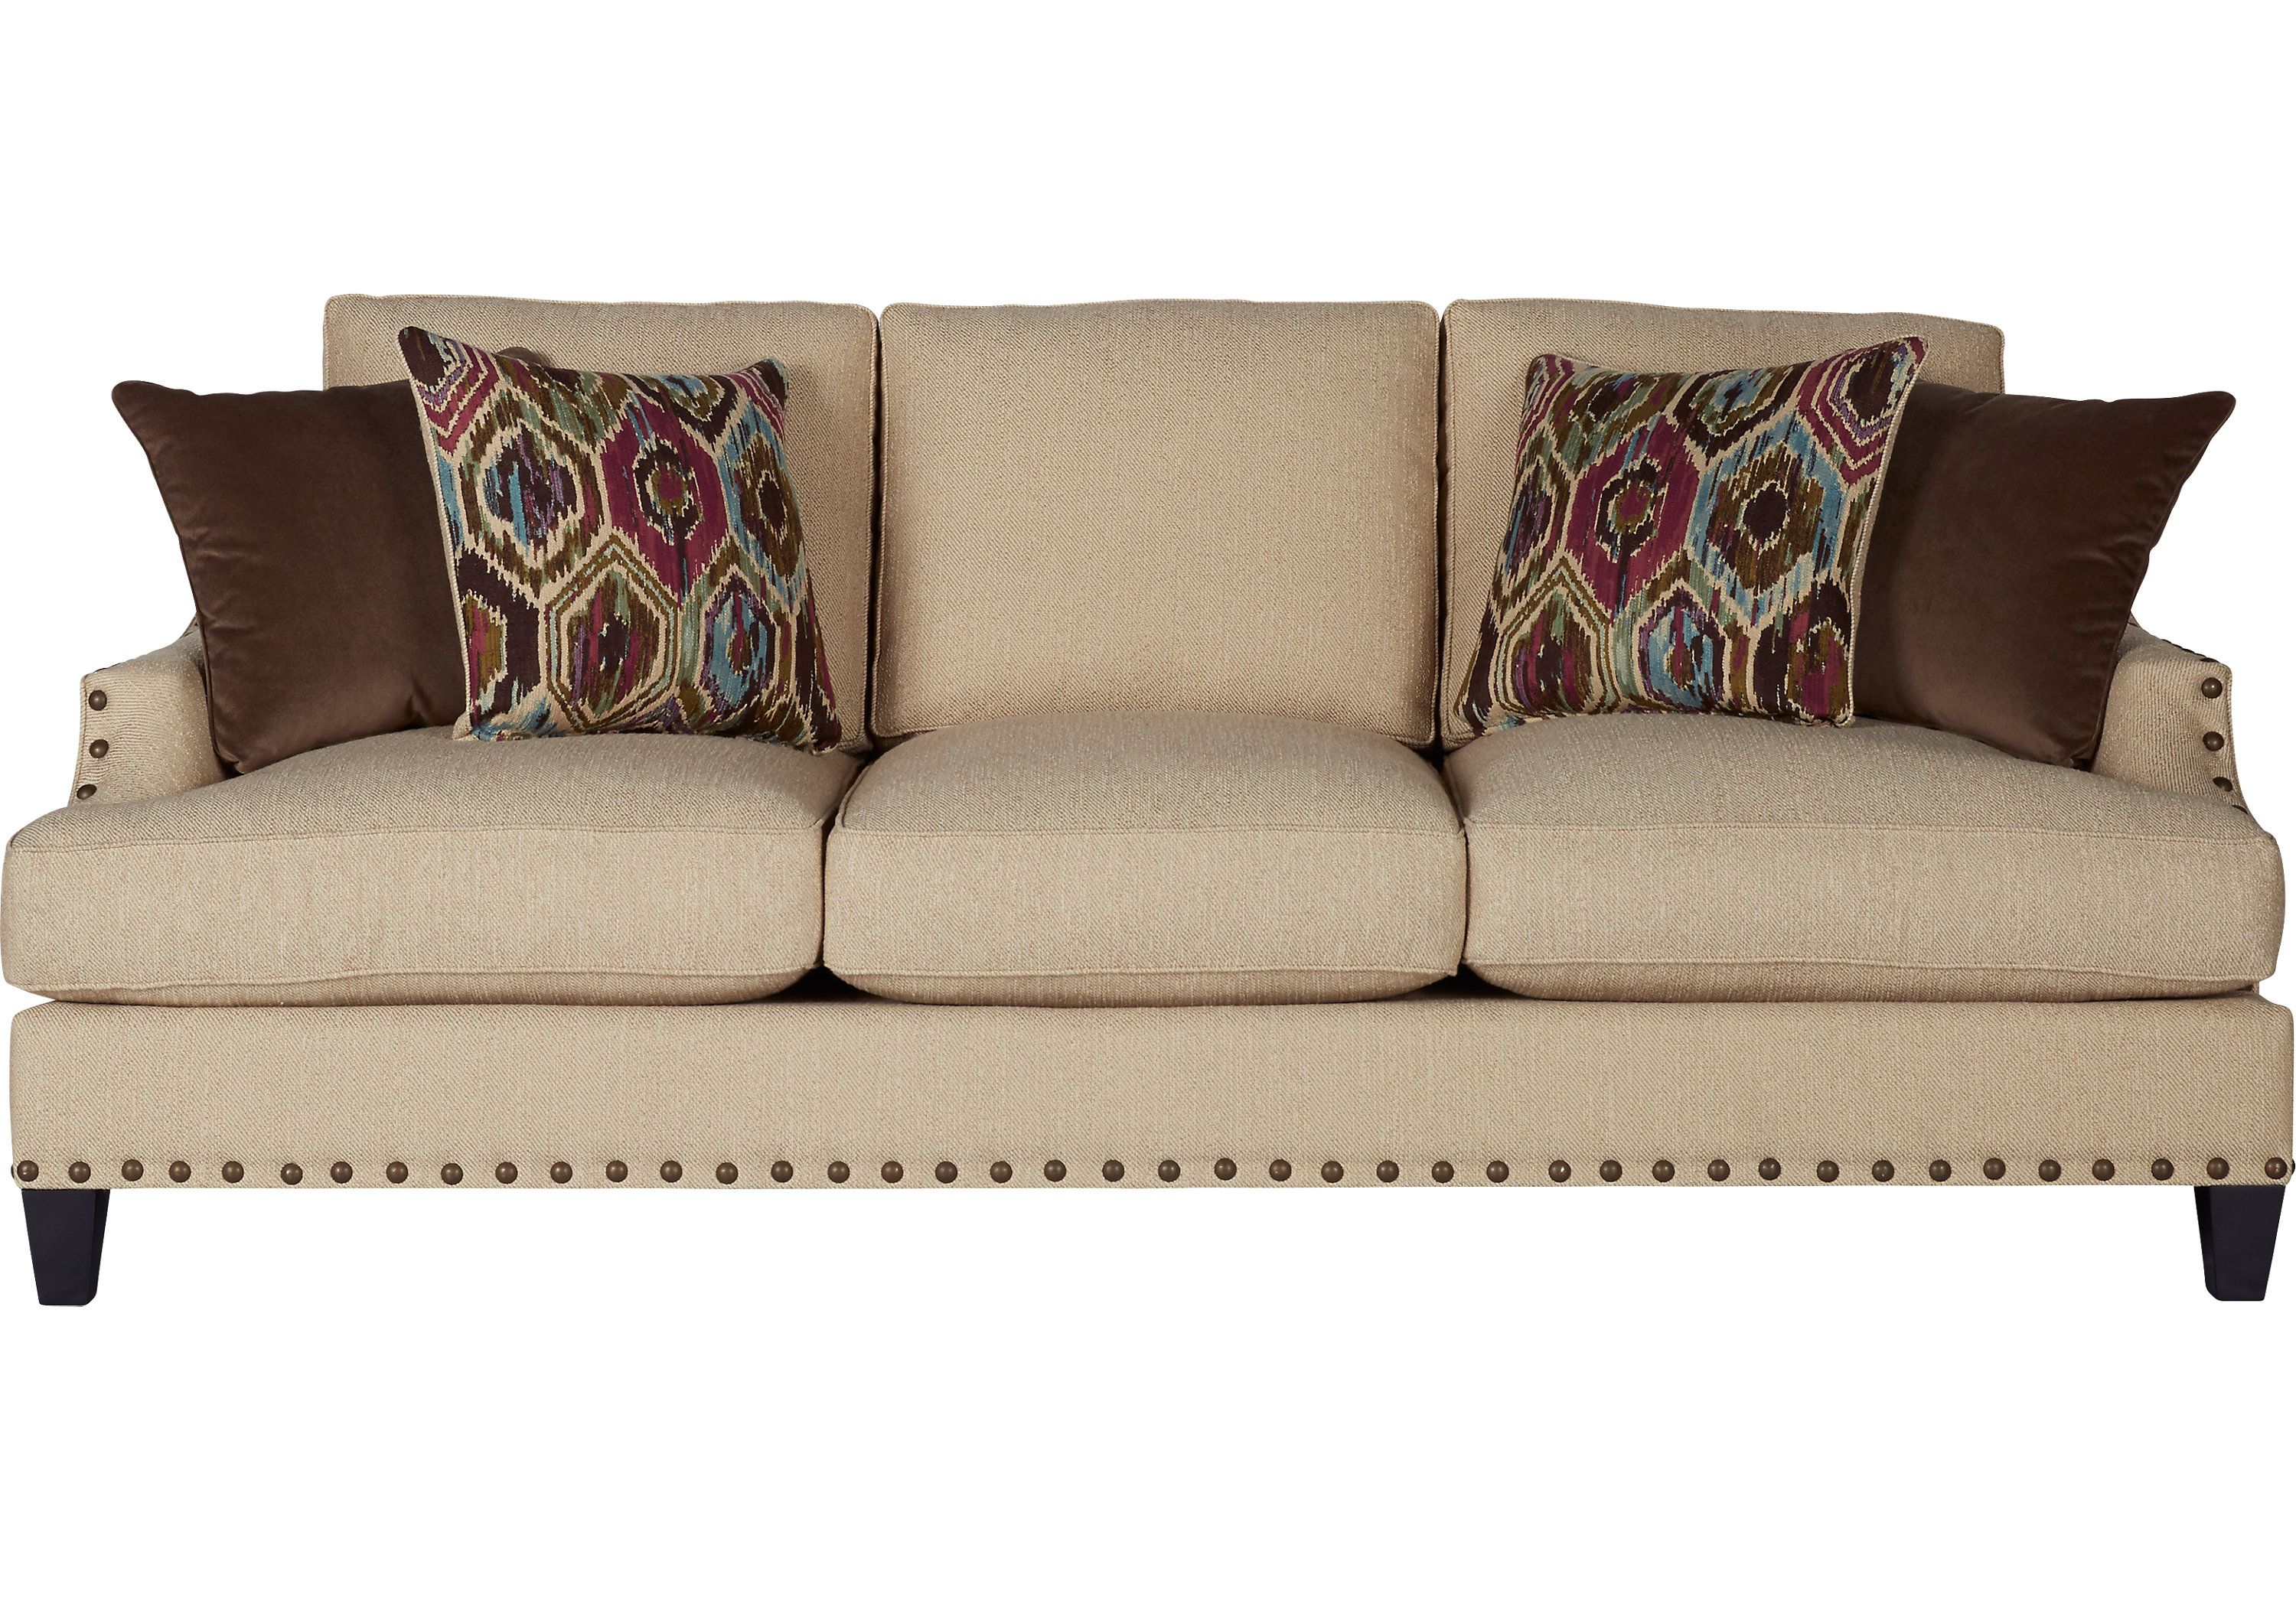 picture of Cindy Crawford Home Nolita Taupe Sofa from Sofas